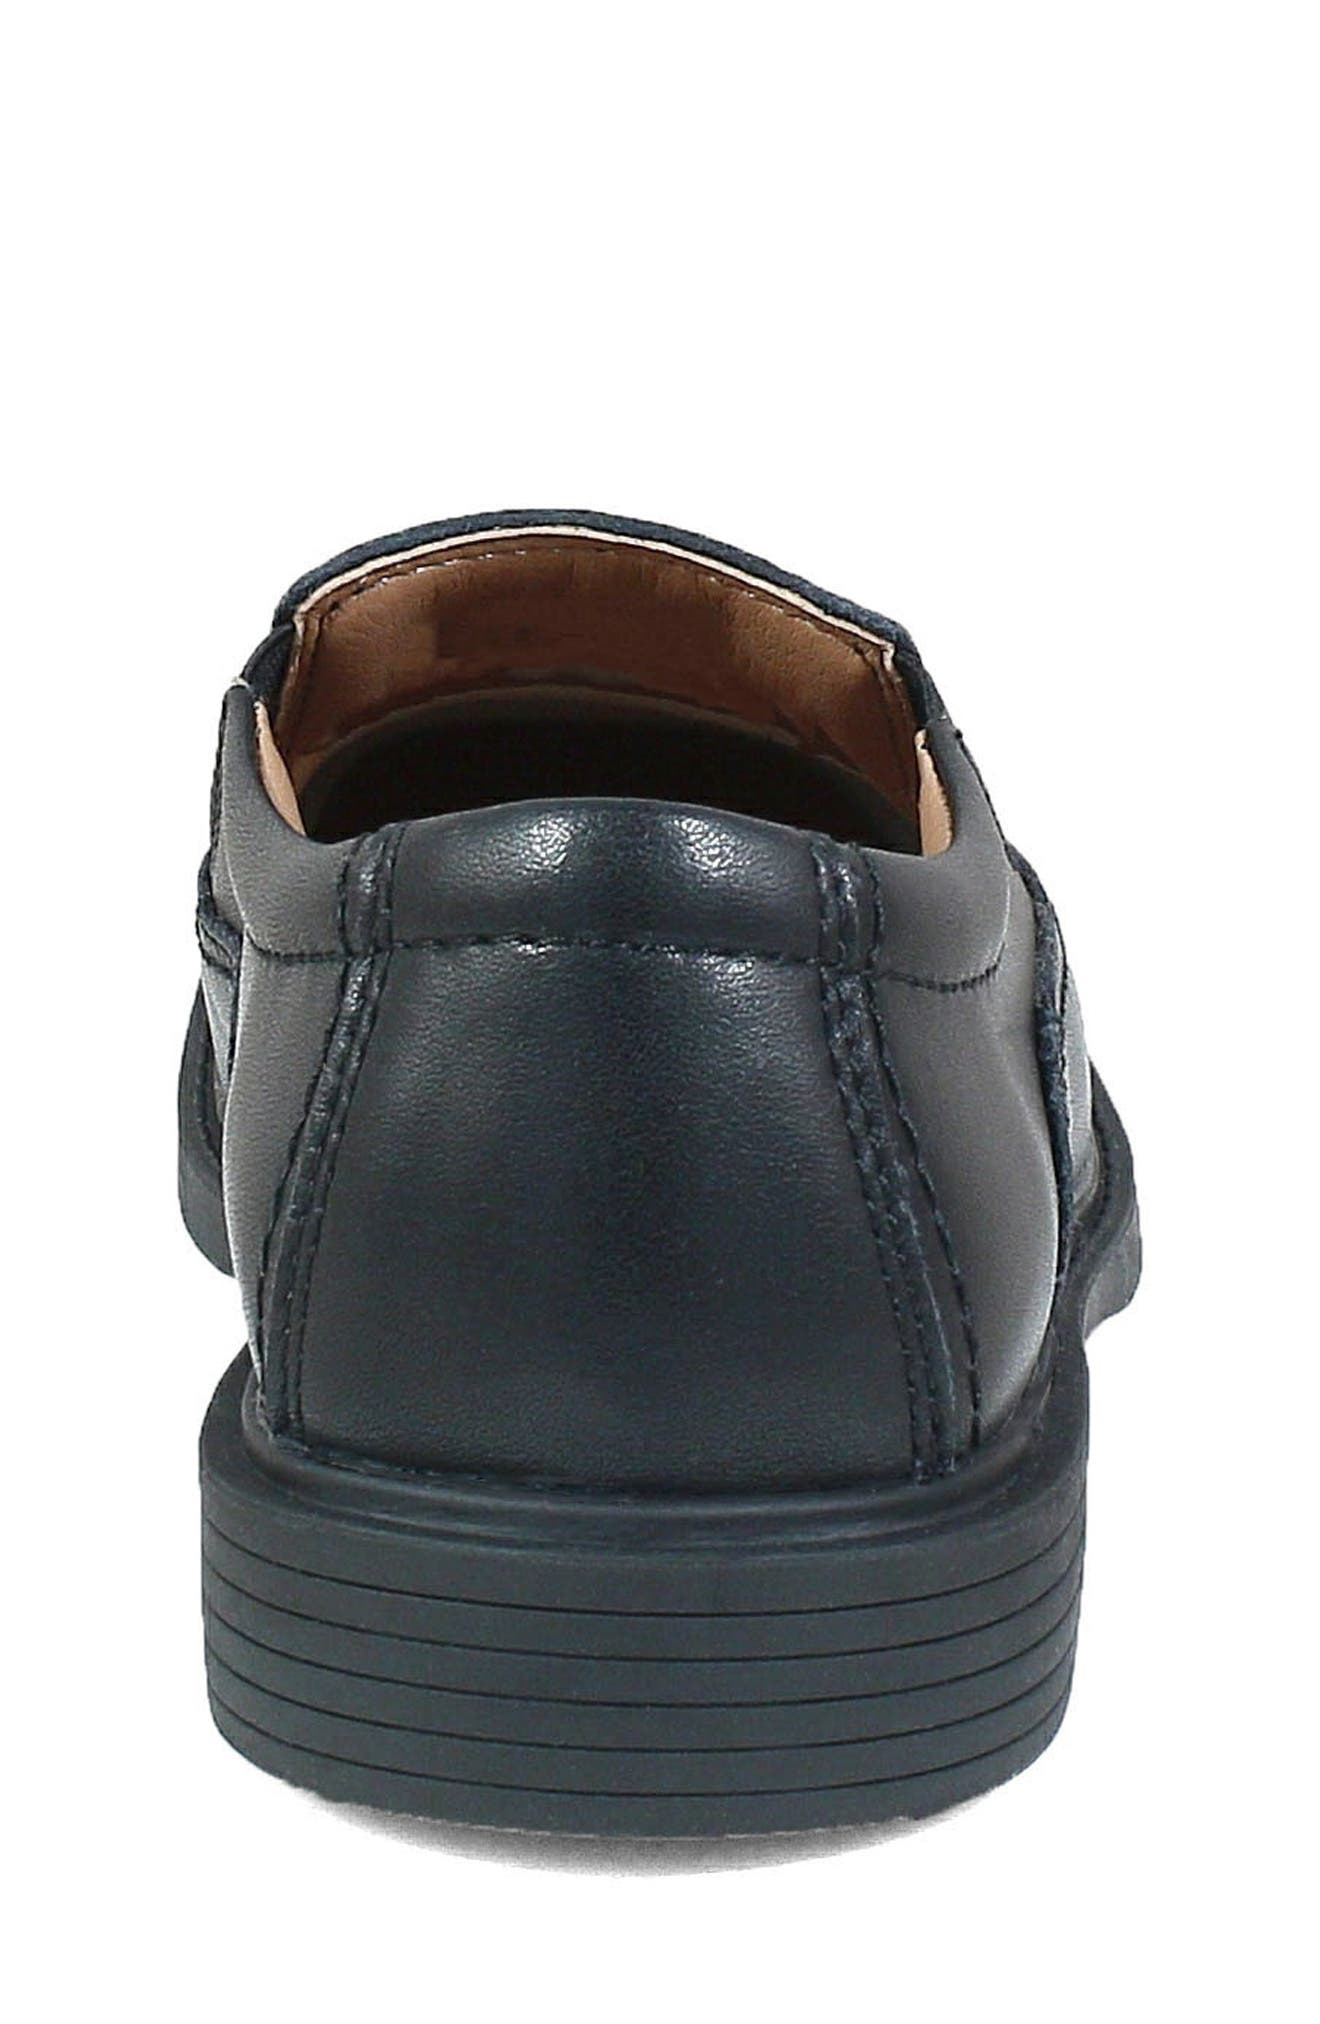 Bogan II Slip-On,                             Alternate thumbnail 7, color,                             BLACK